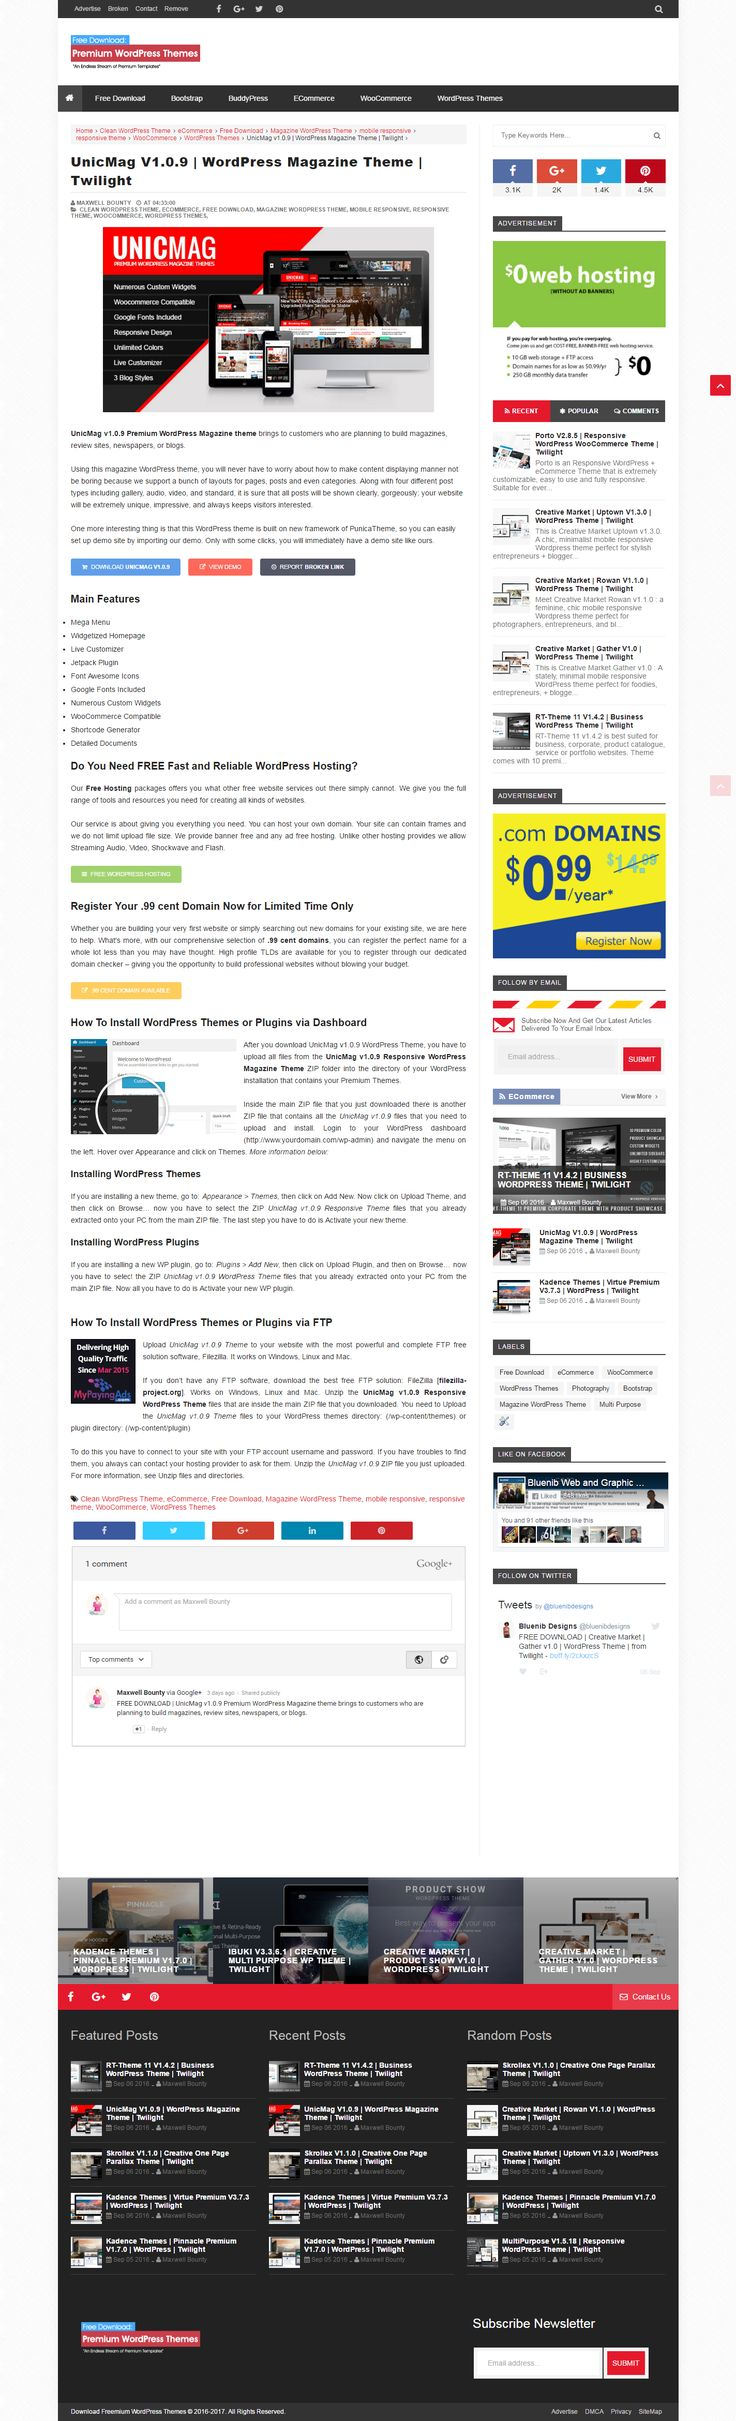 Gmail theme free download - Free Download Unicmag V1 0 9 Premium Wordpress Magazine Theme Brings To Customers Who Are